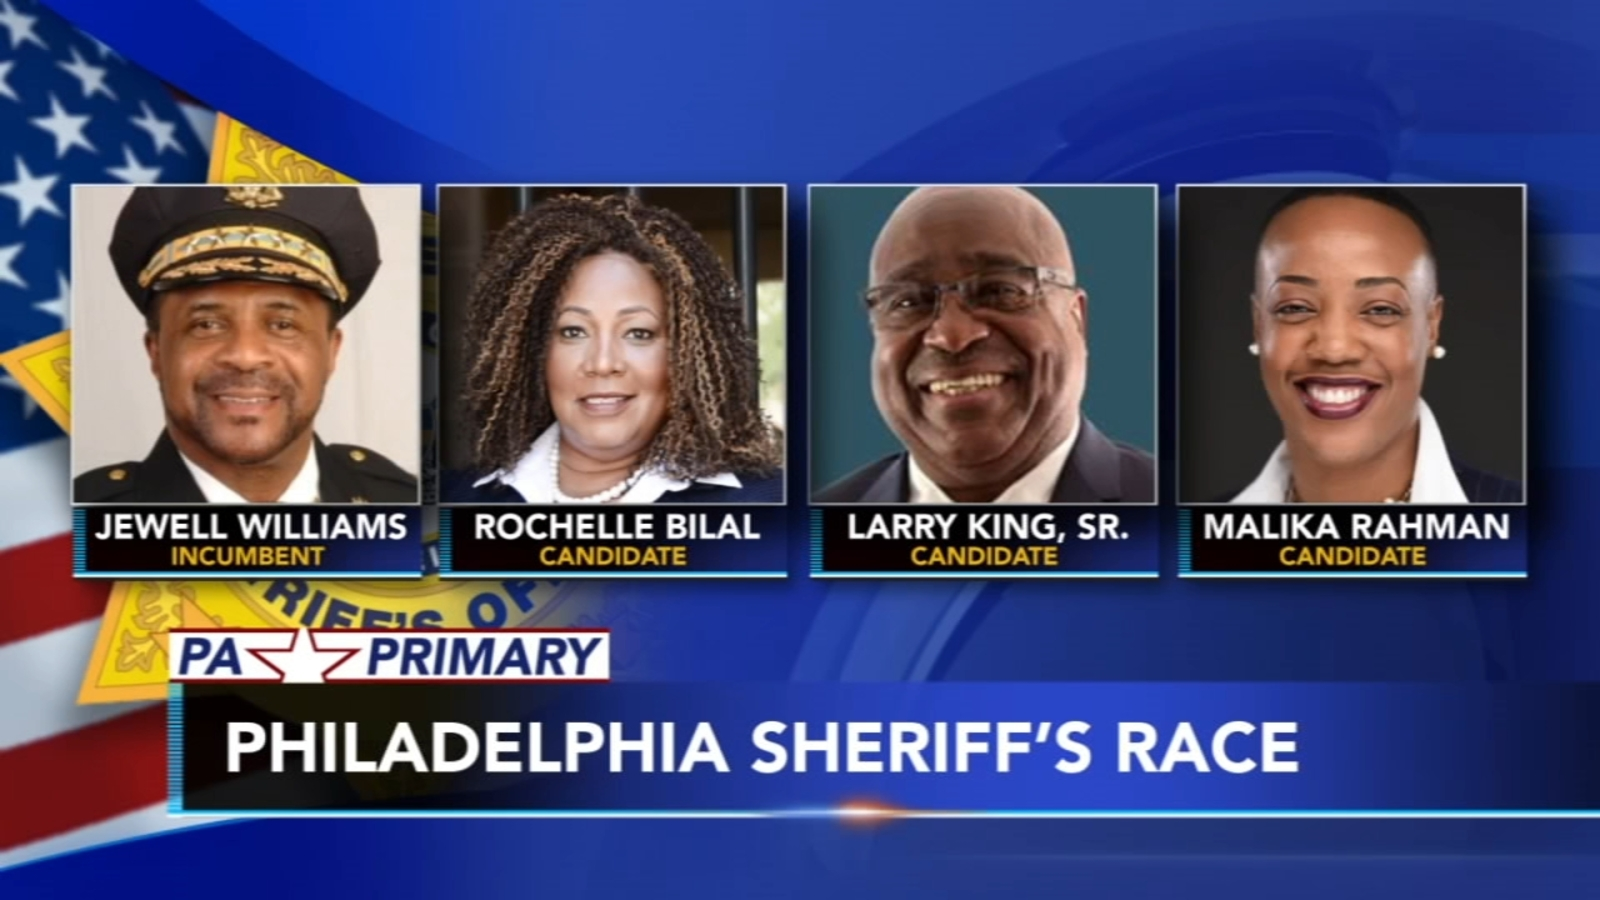 Philadelphia primary voters have four choices for sheriff